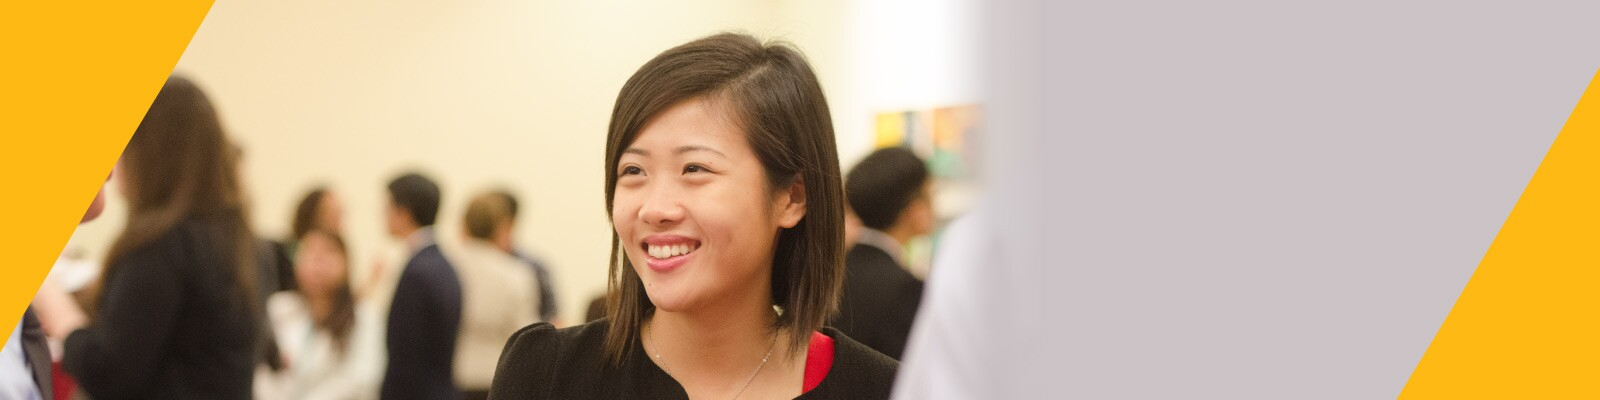 Woman smiles confidently at networking event